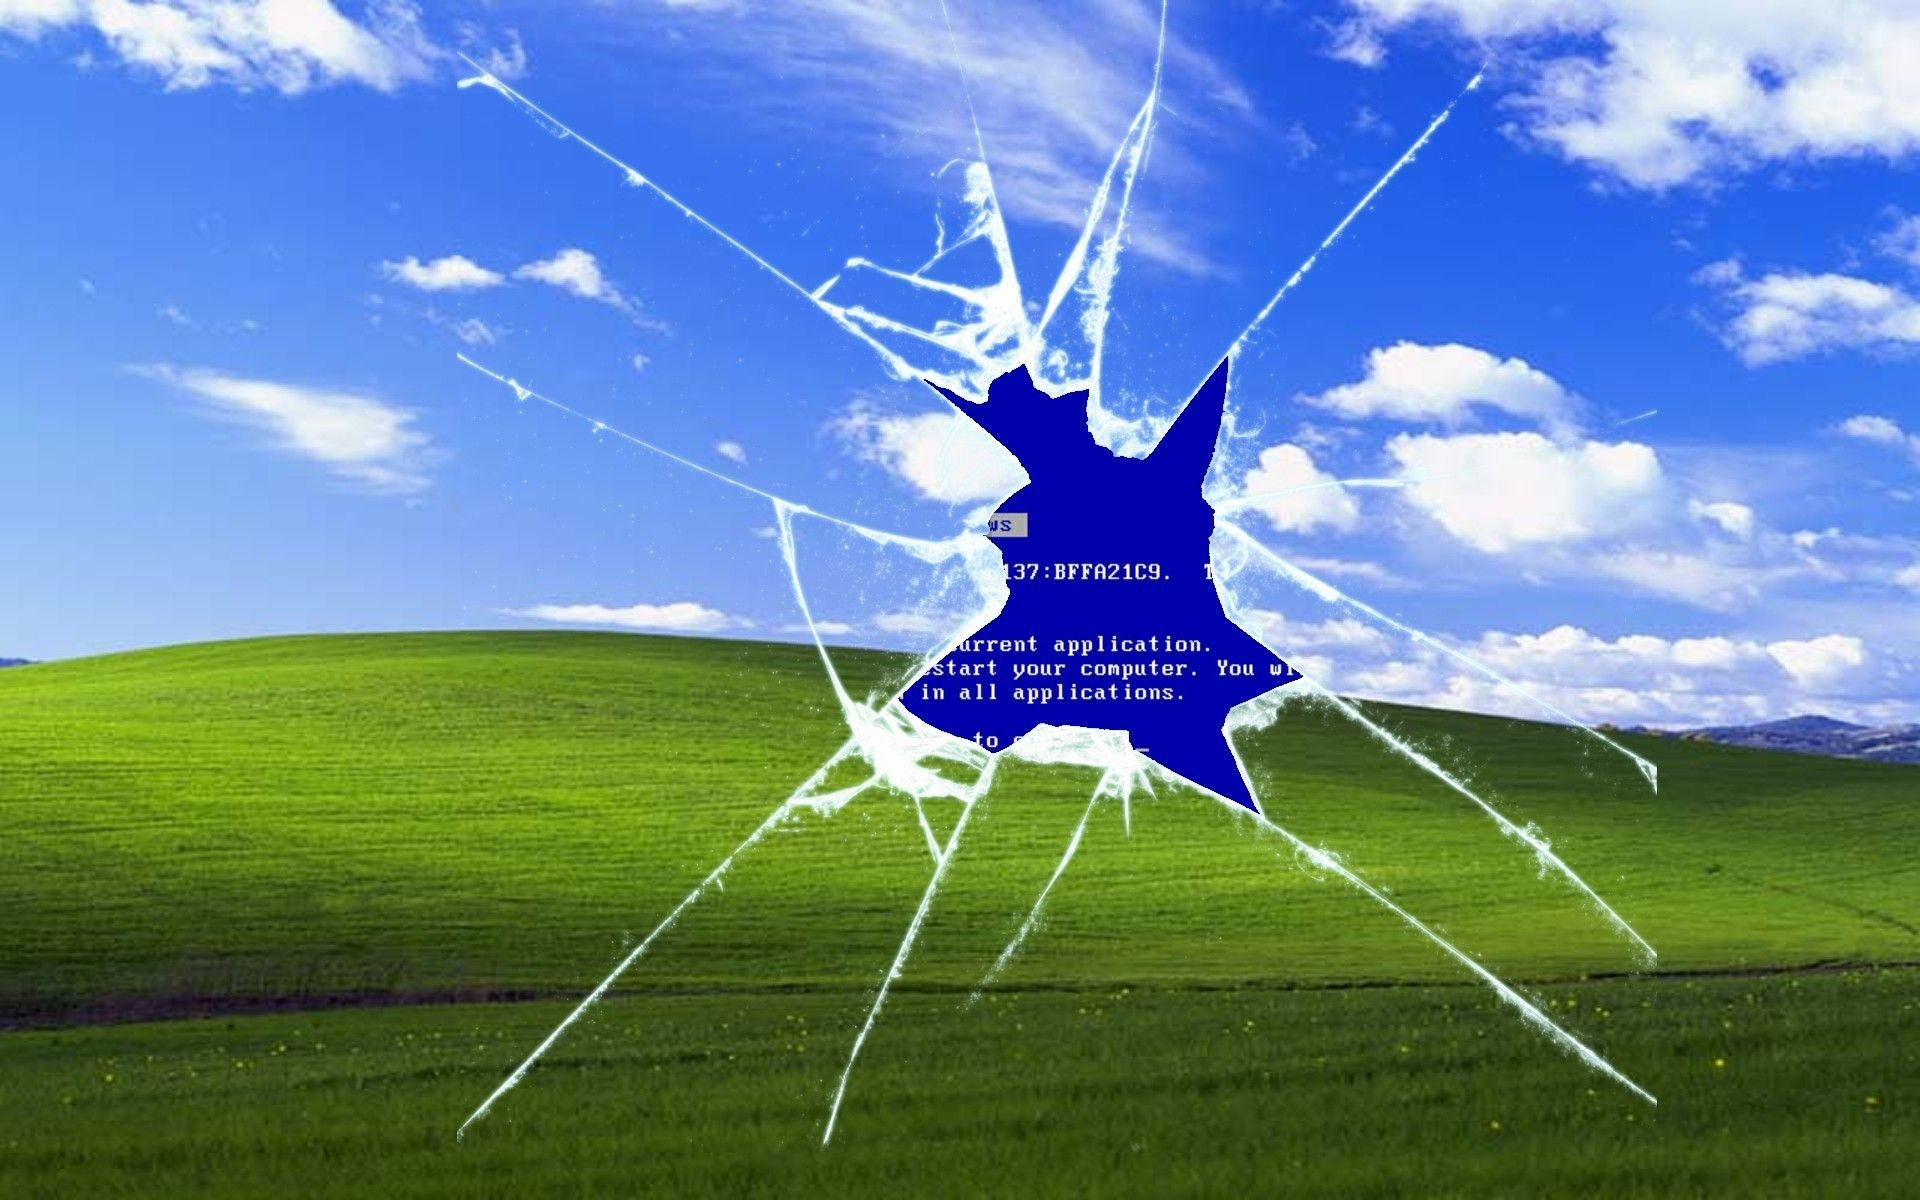 Windows XP Wallpapers Bliss Wallpaper 1920×1200 Windows Wallpapers Location  (31 Wallpapers) |